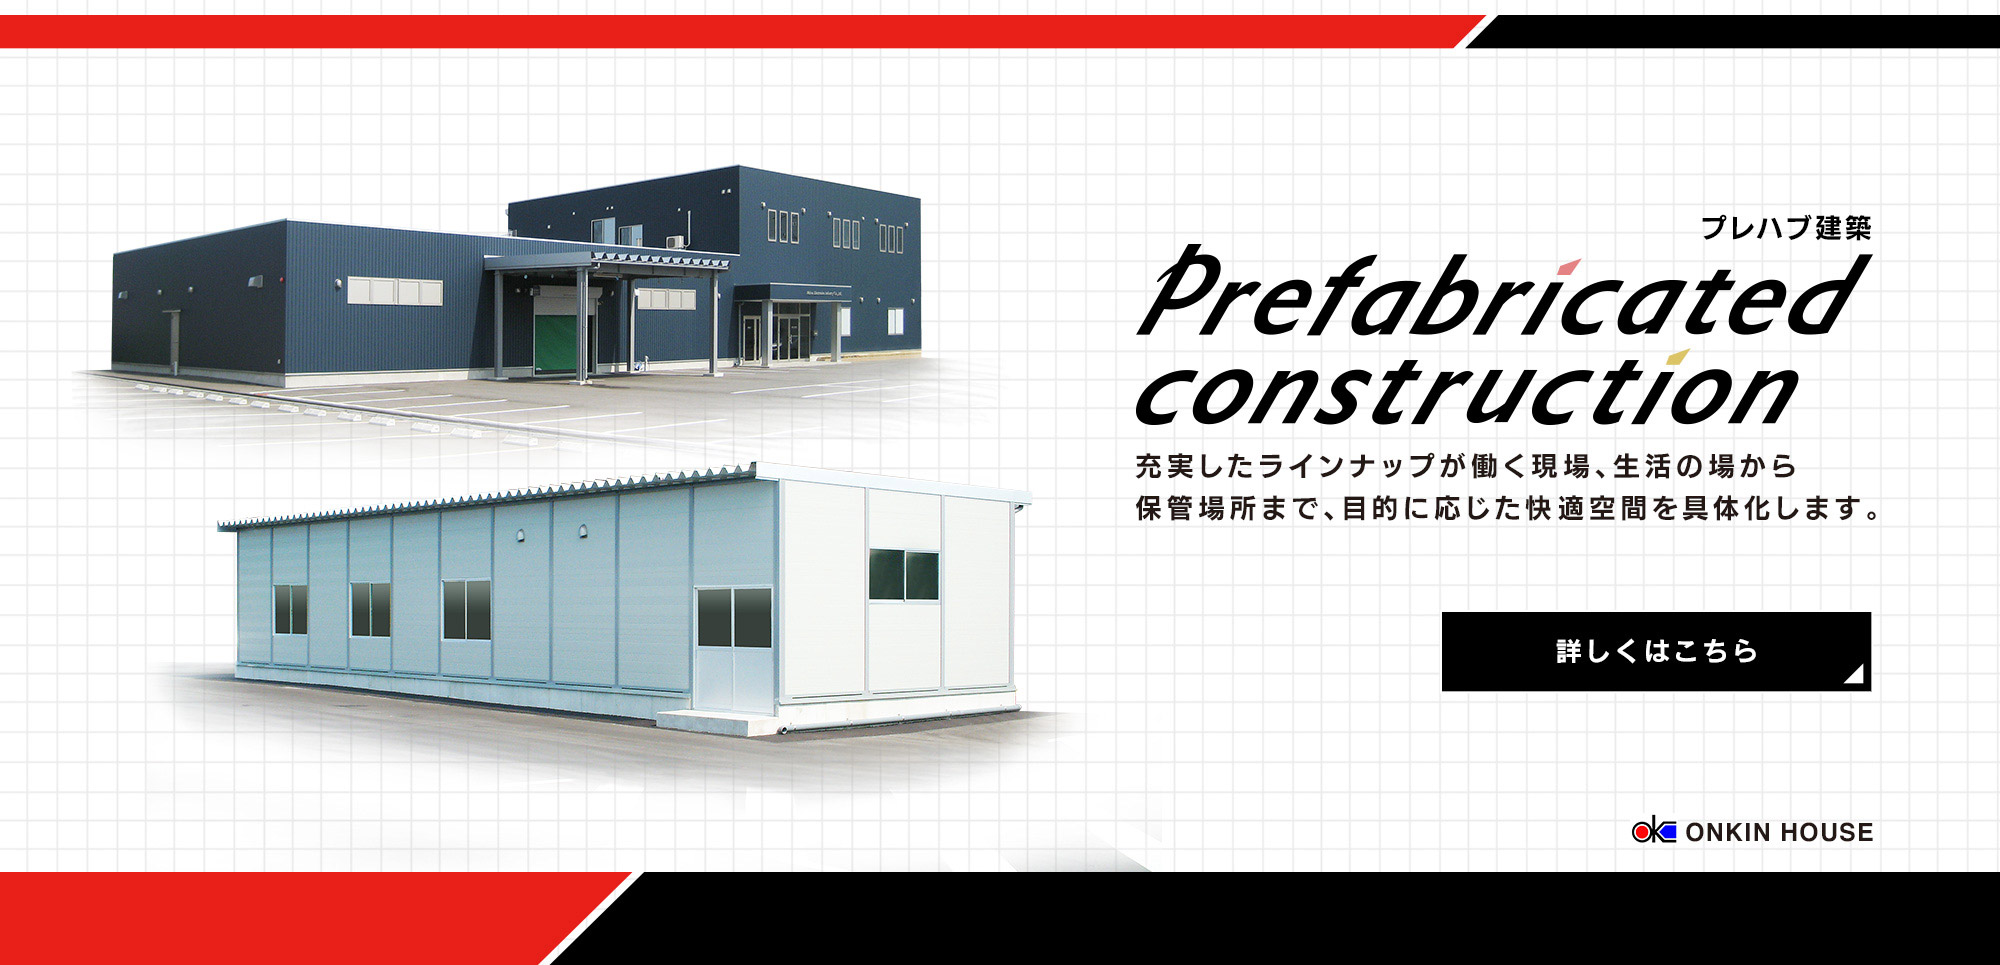 Preafabricated construction オンキンハウス プレハブ建築 詳しくはこちら